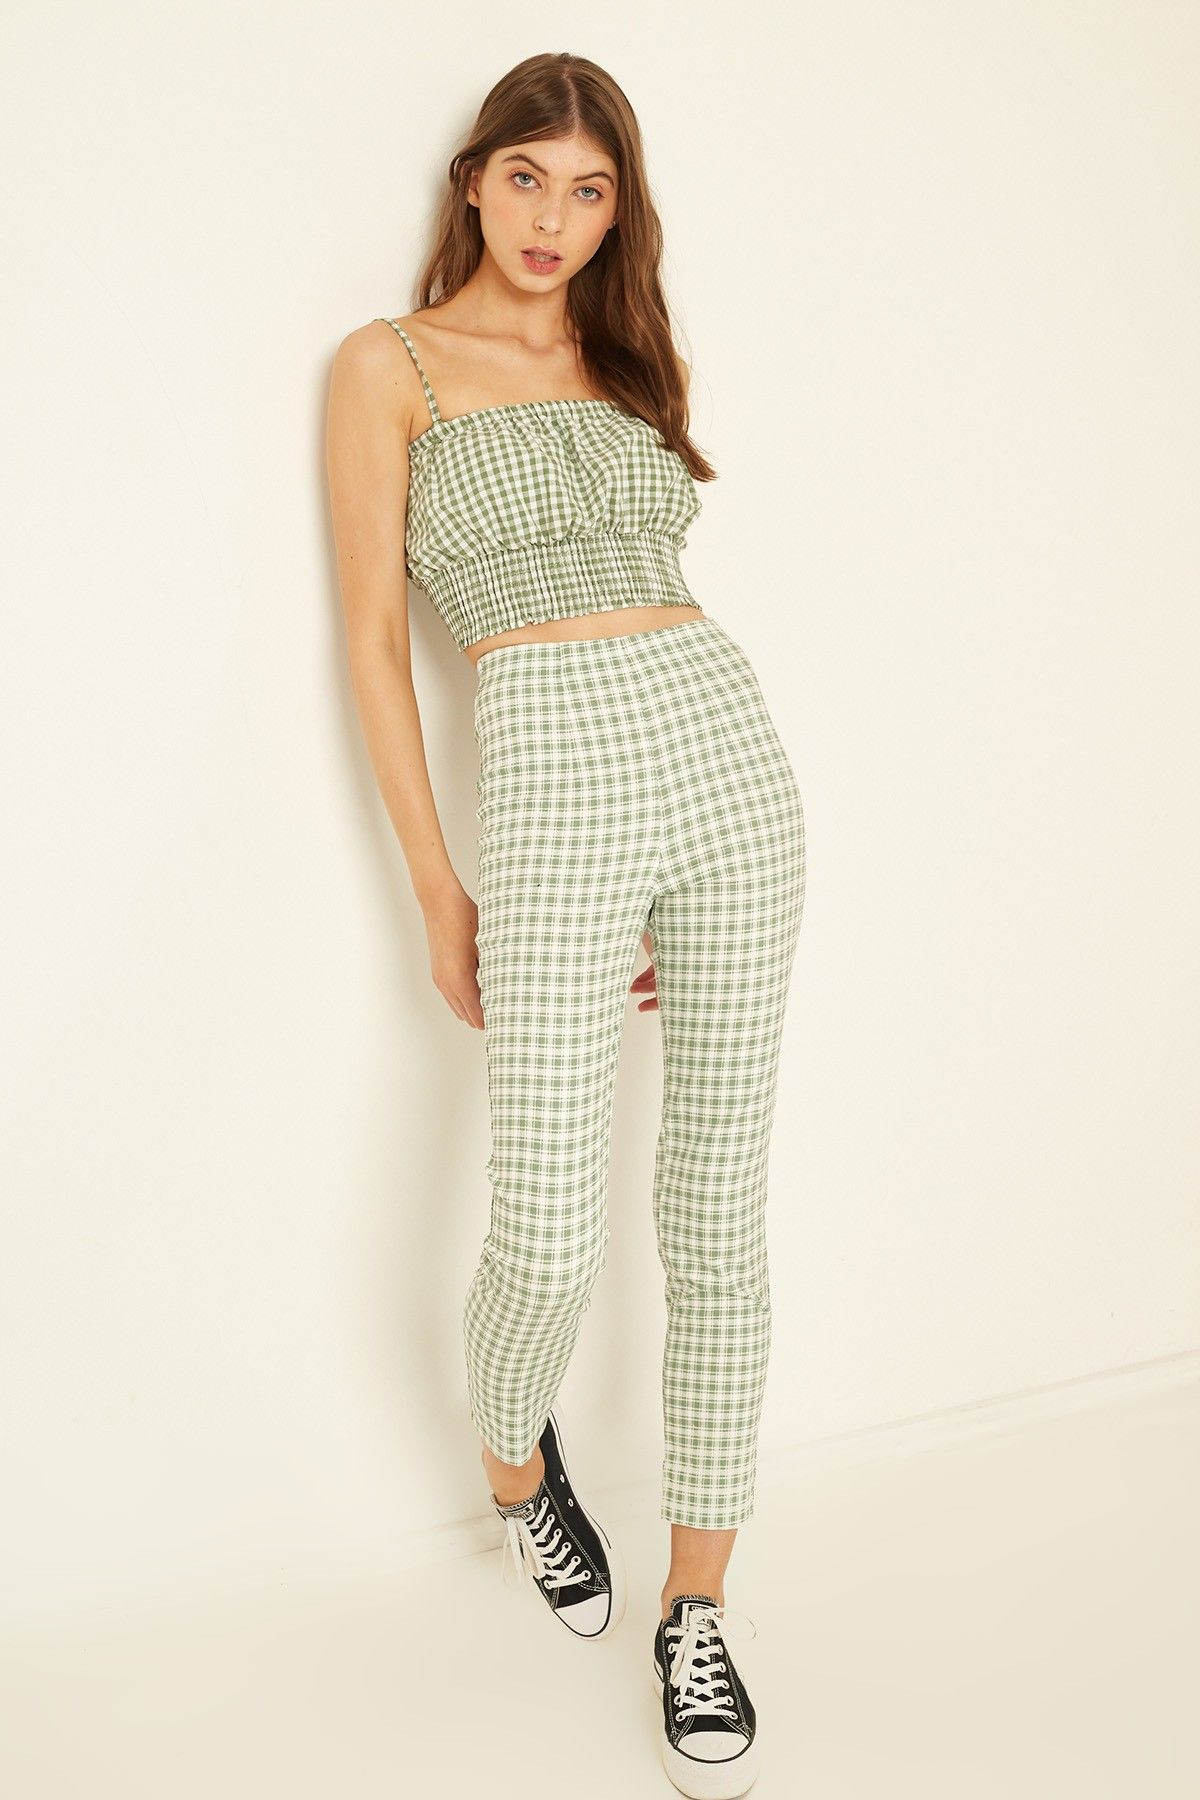 Luck trouble gingham pant sage gingham pants cute